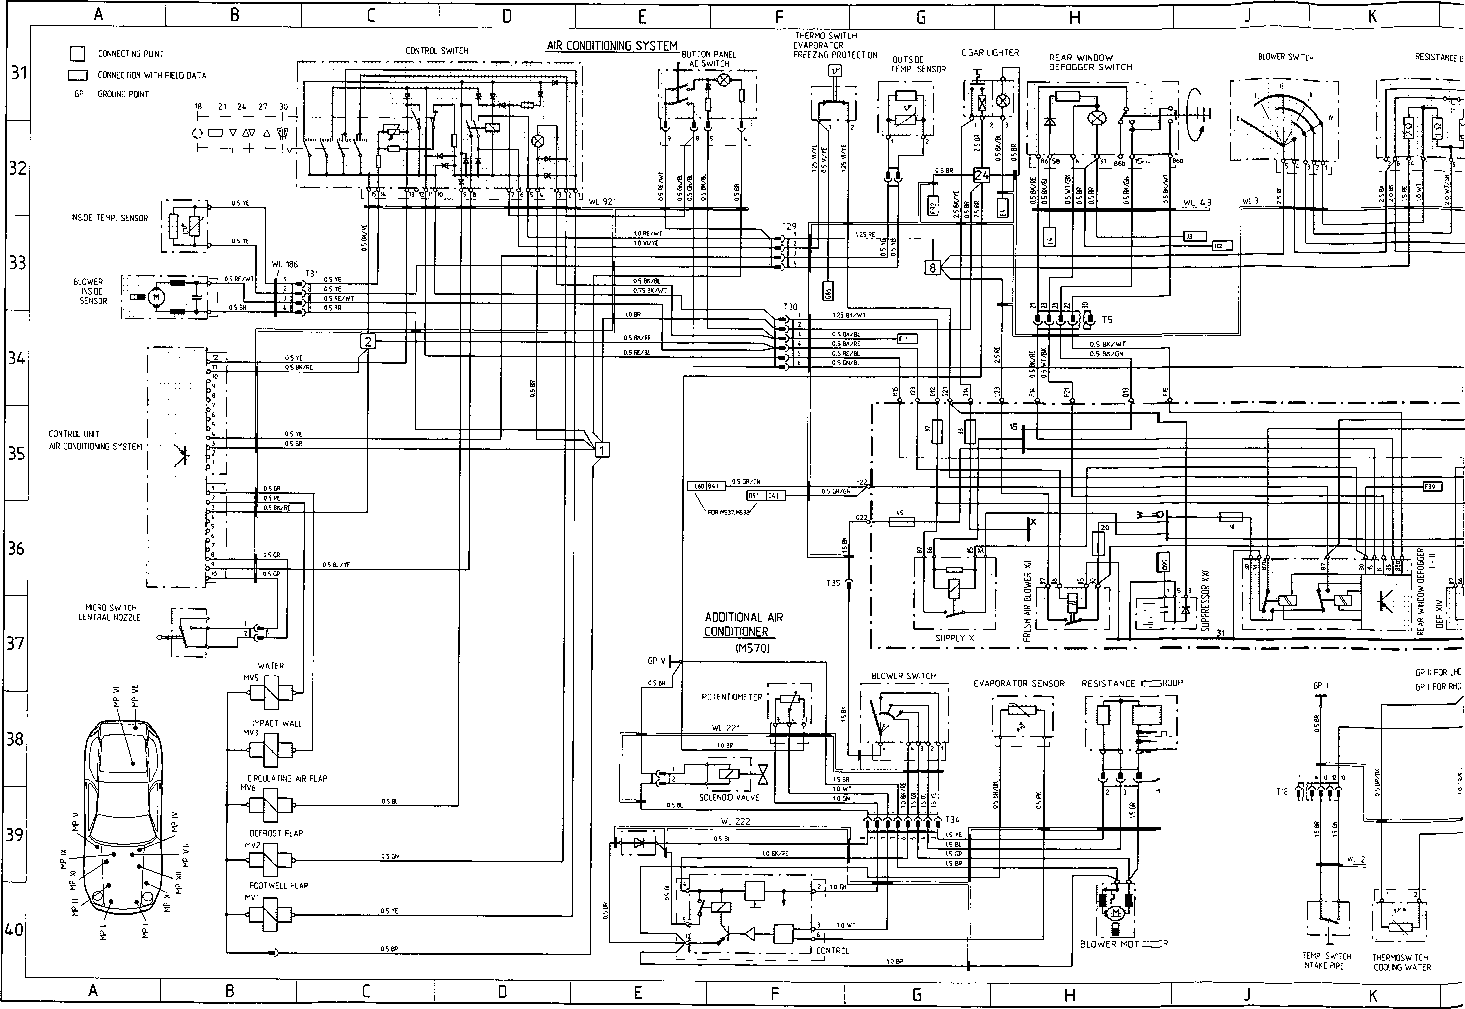 lock up 700r4 manual diagram auto starter motor wiring also transmission diagrams